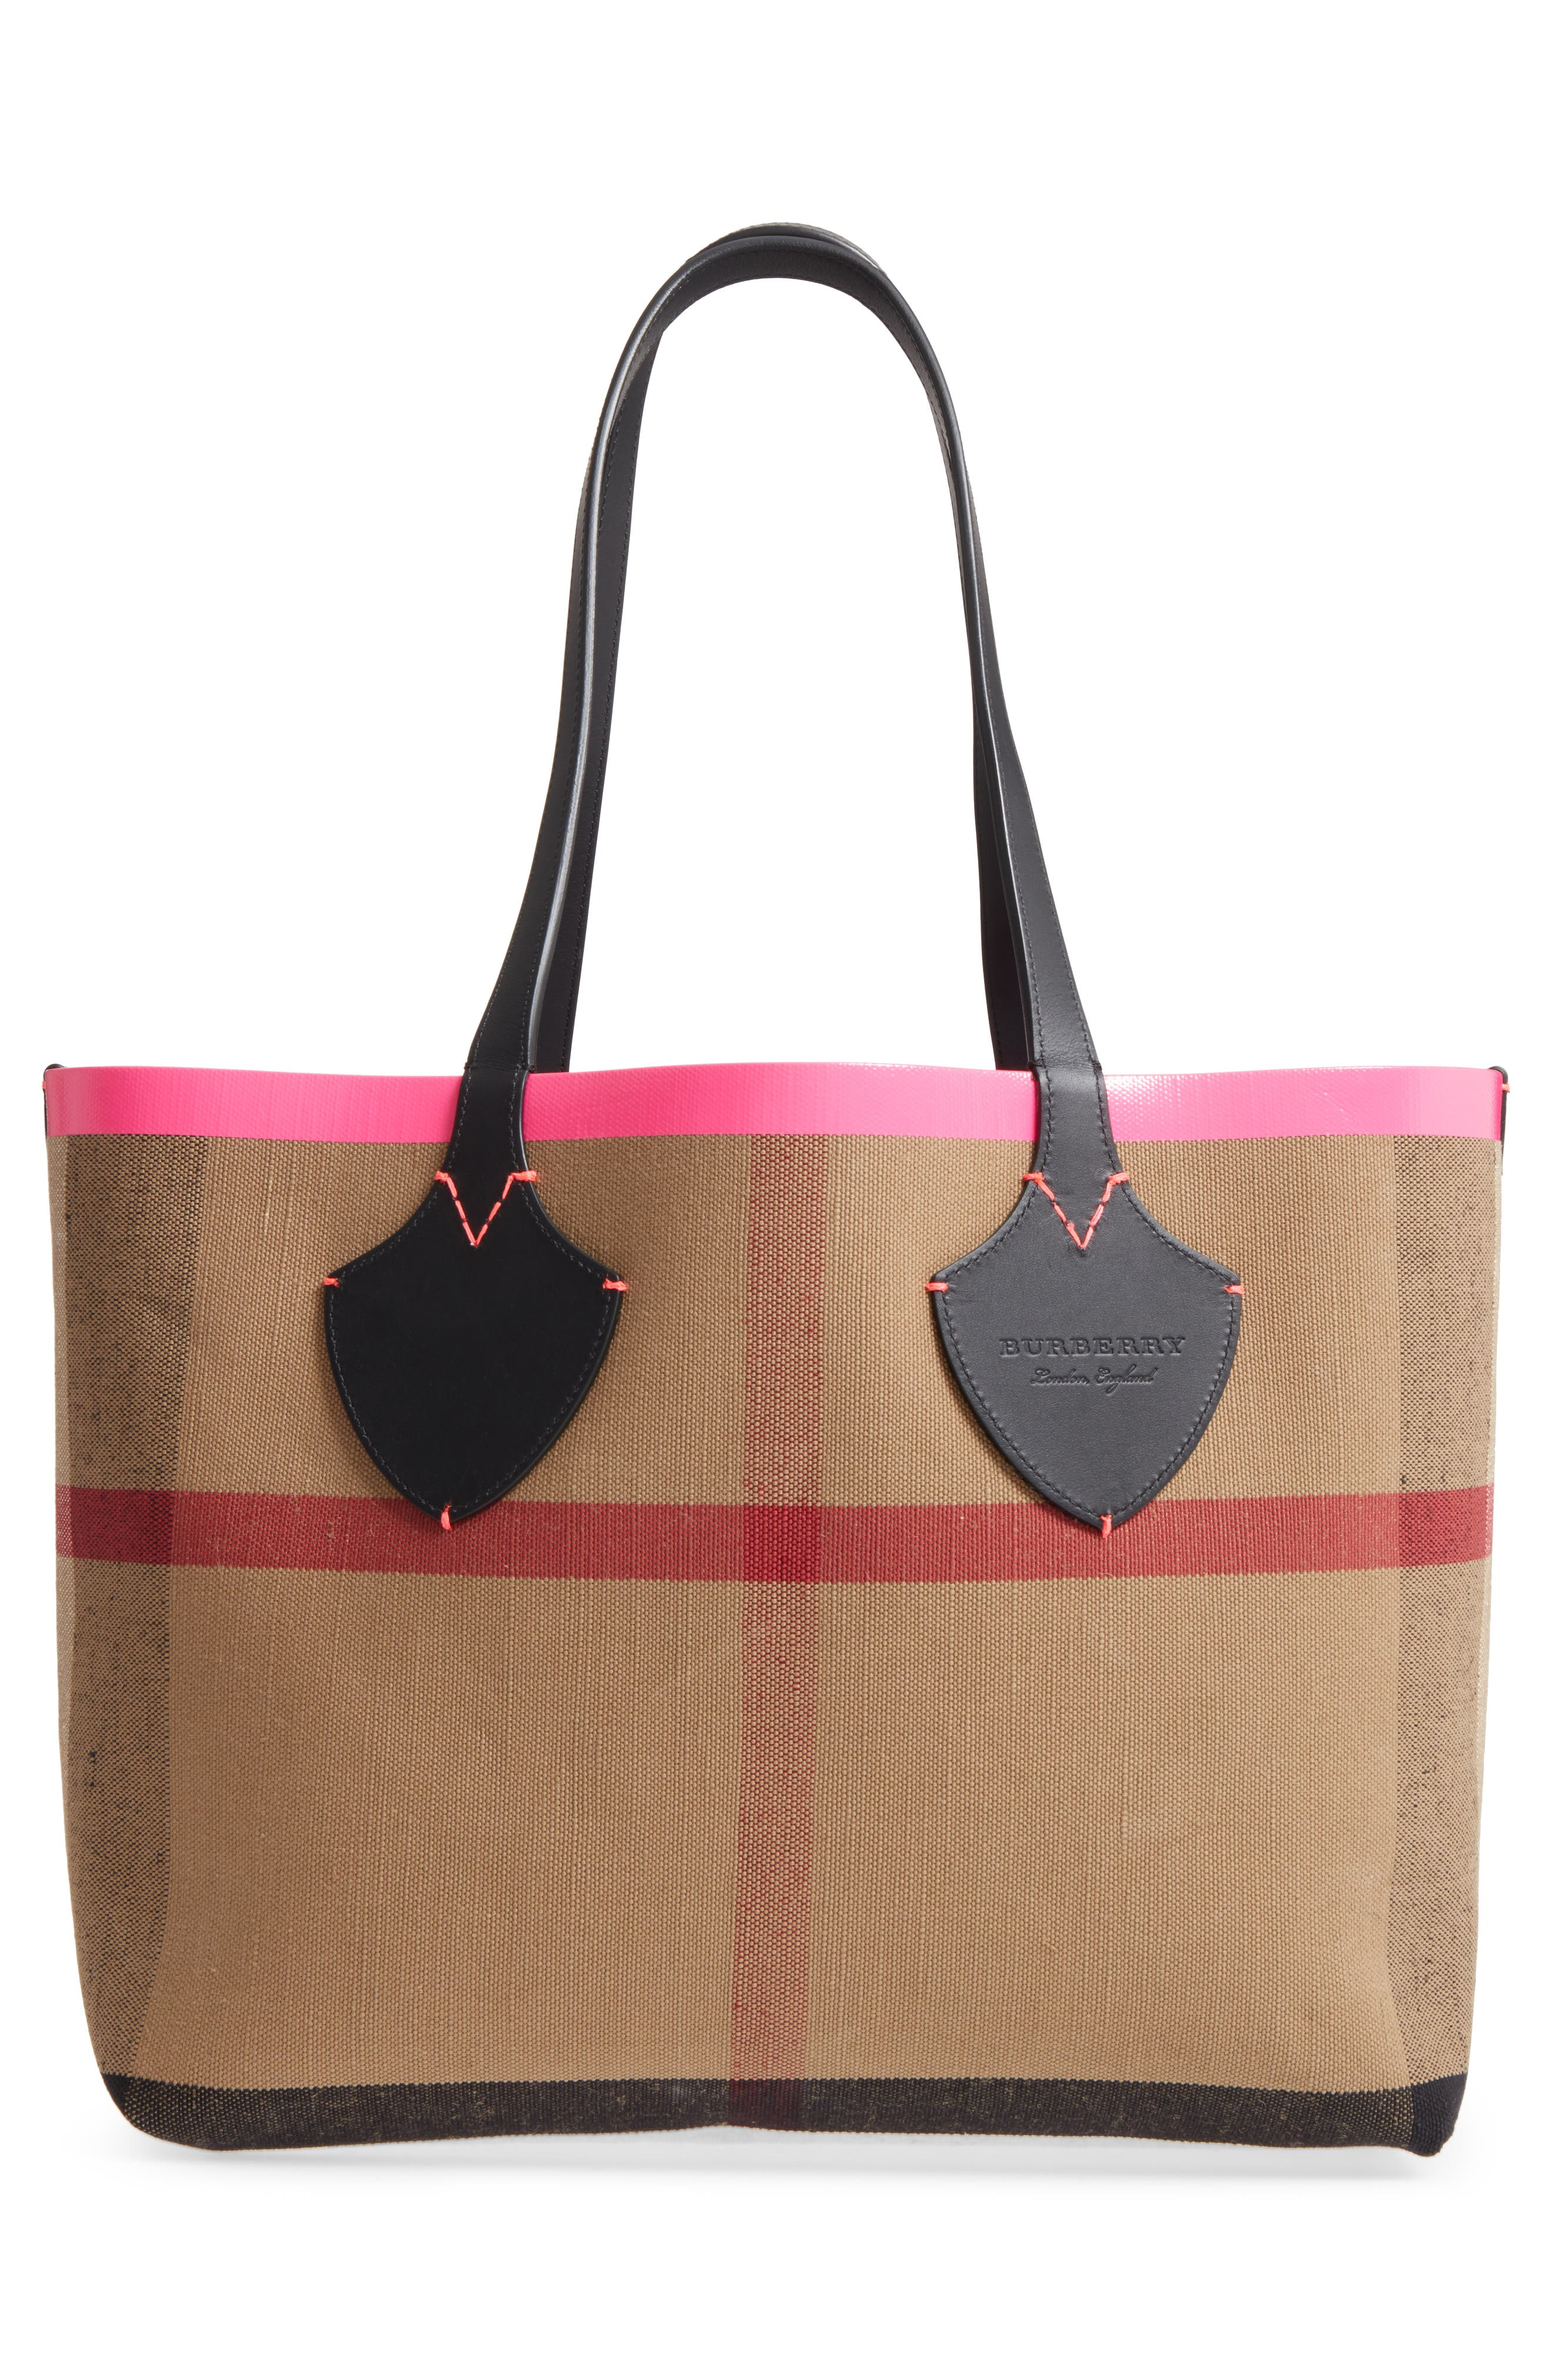 Medium Reversible Check Canvas & Leather Tote,                             Alternate thumbnail 4, color,                             Black/ Neon Pink